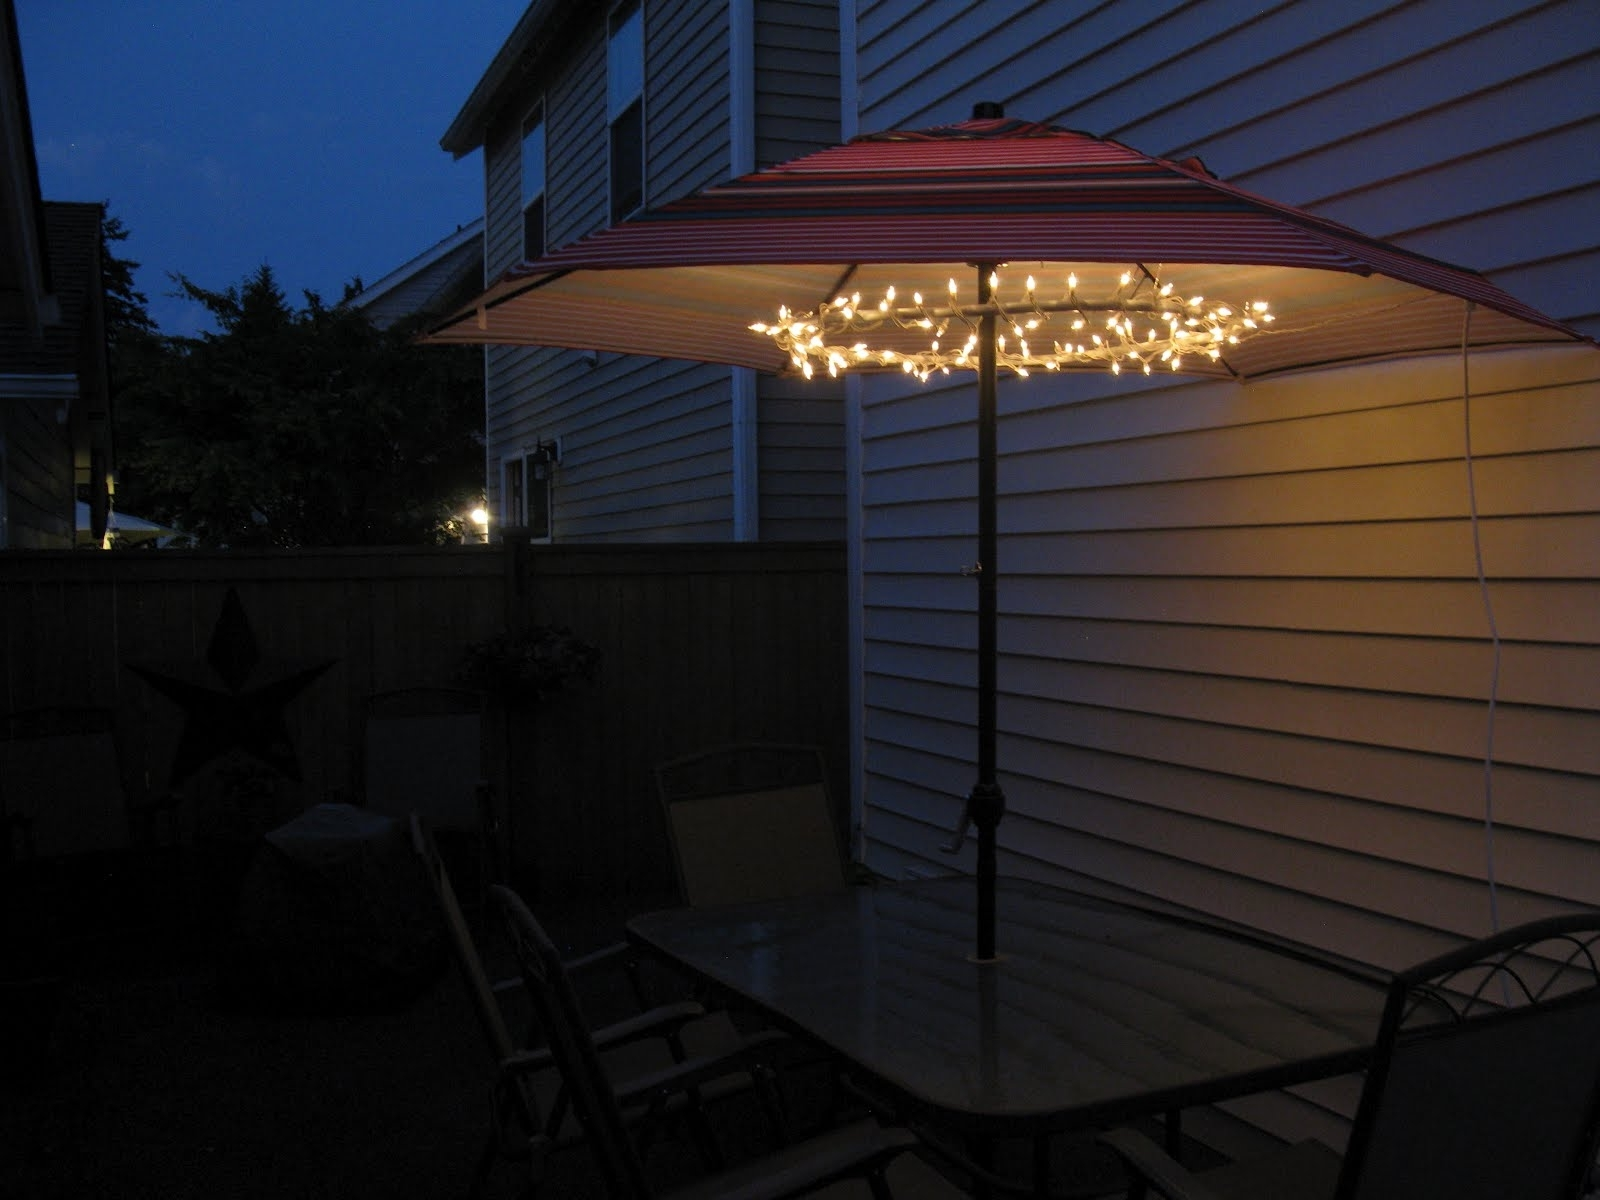 Solar Patio Umbrellas In Widely Used Amazing Patio Umbrella Lights — Wilson Home Ideas : Beautiful Patio (View 6 of 20)